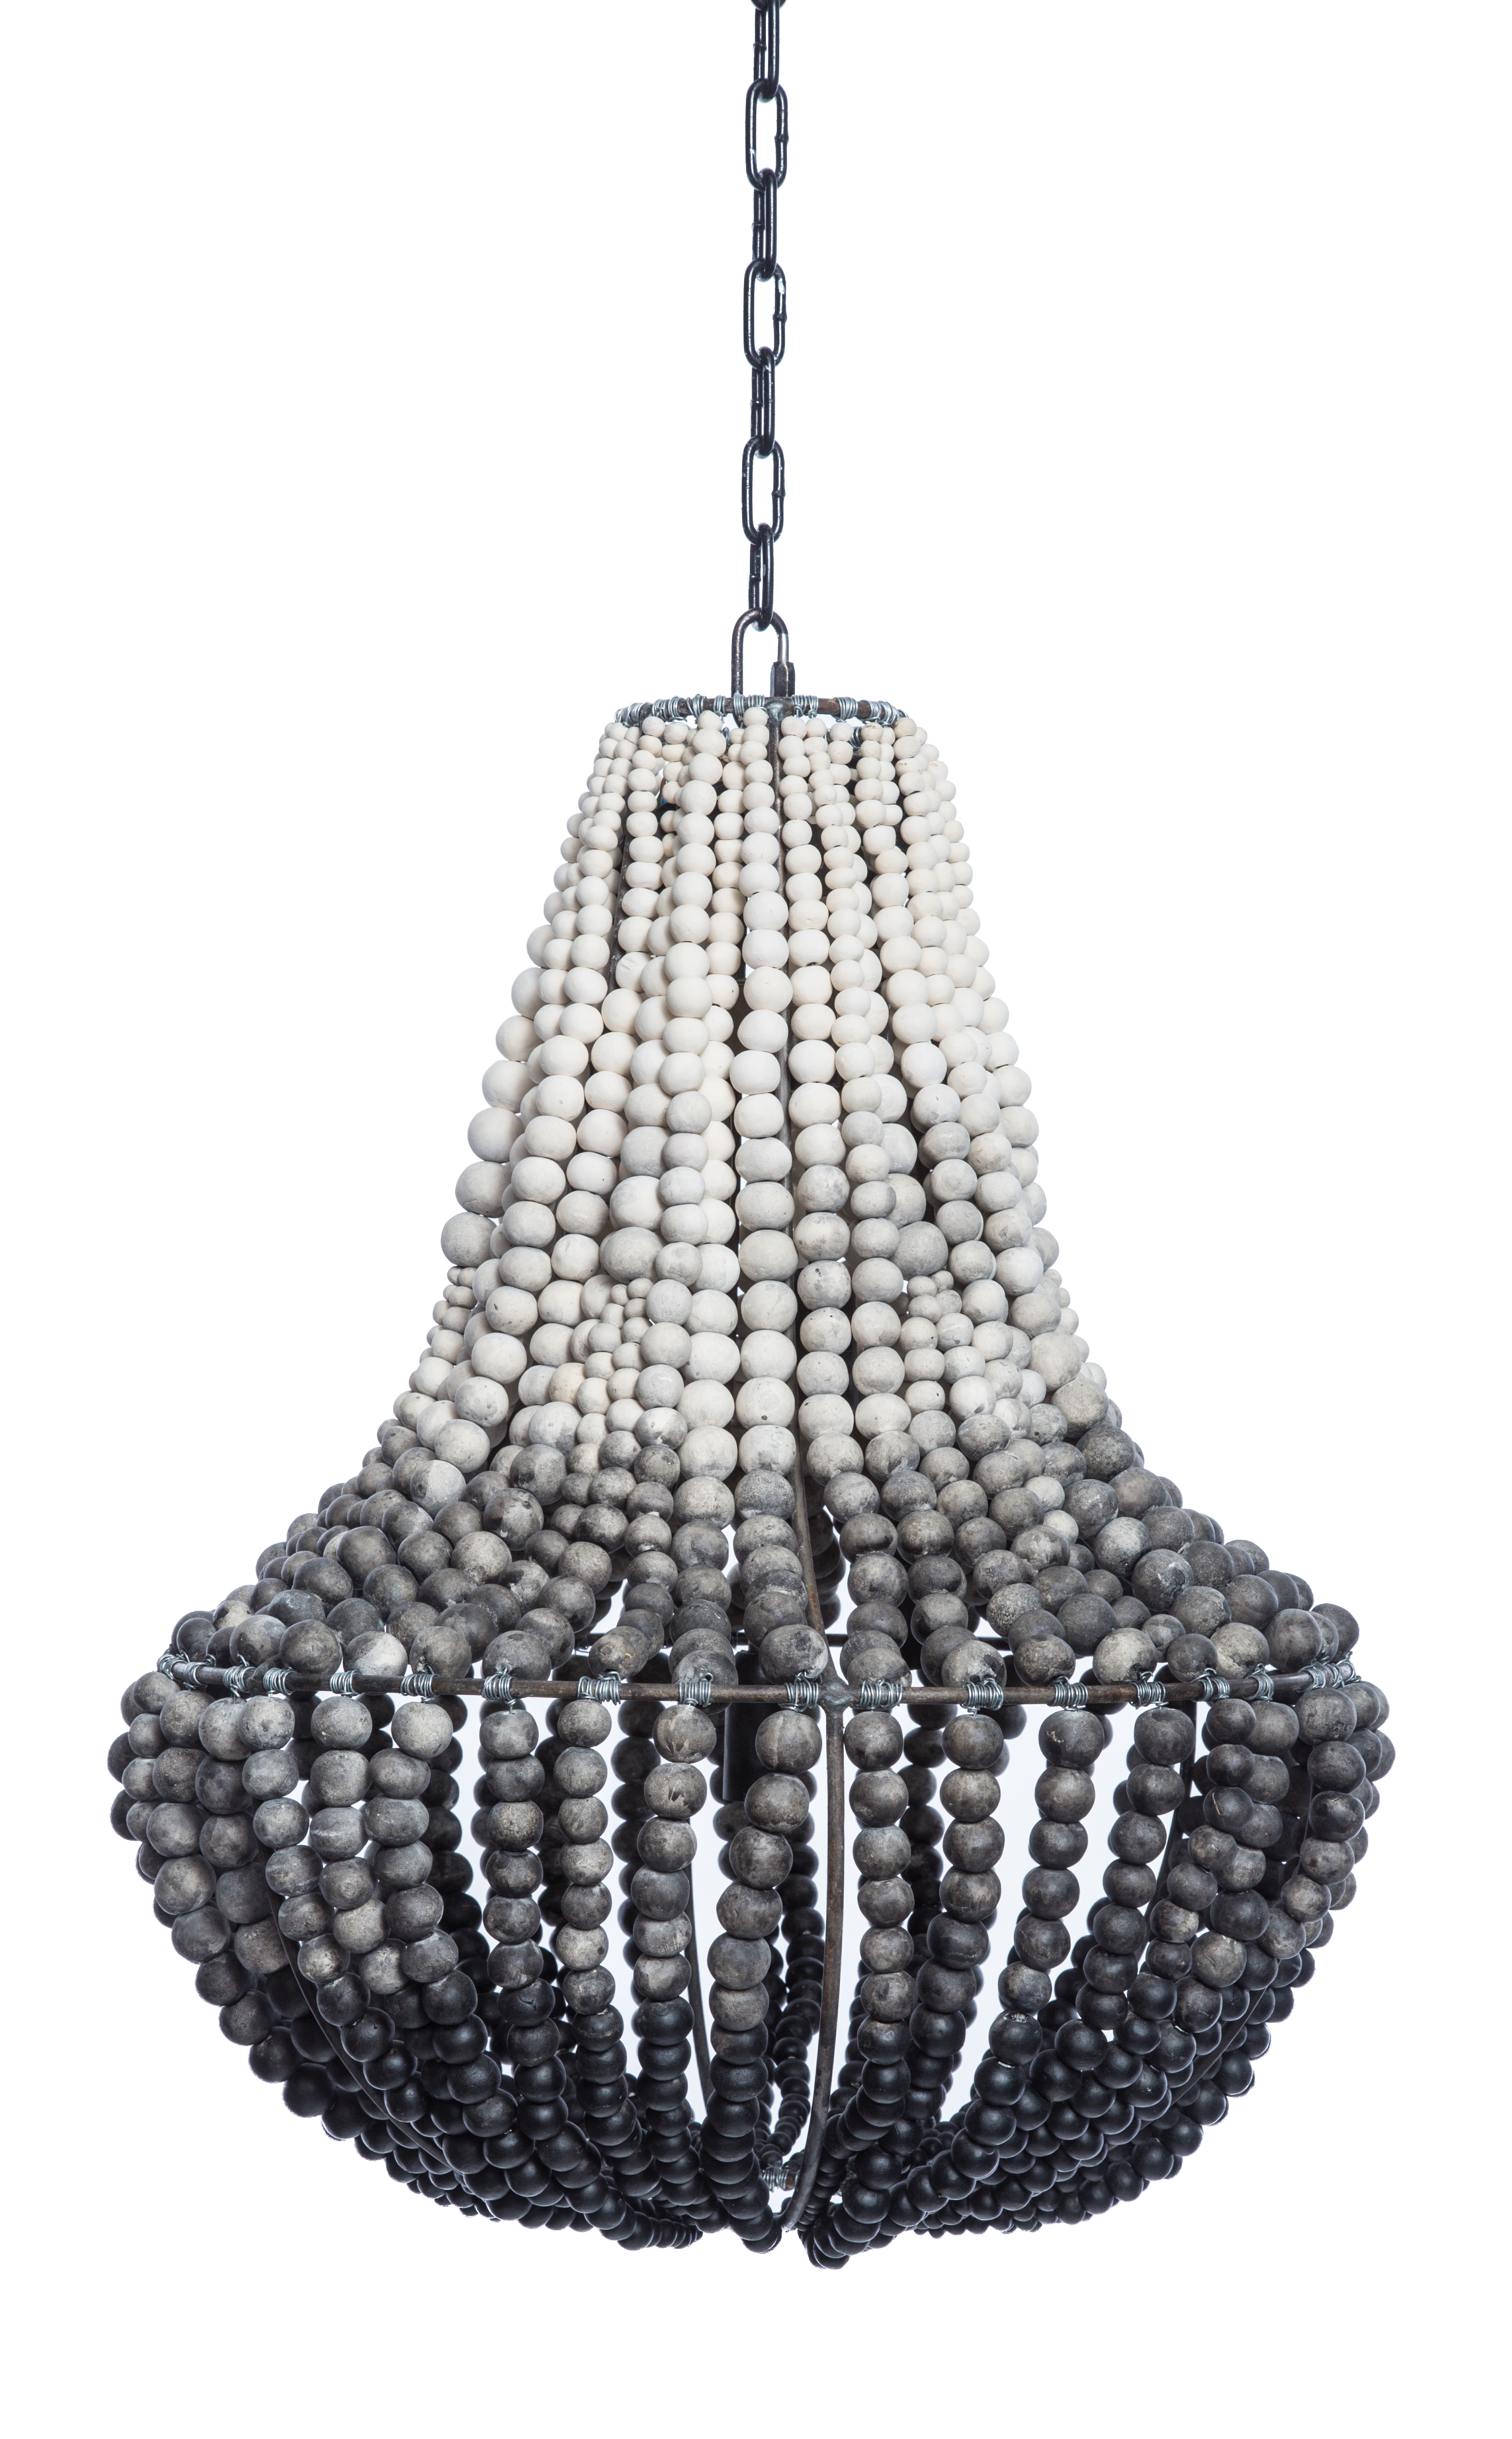 South African Ombre Grey Clay Beaded Chandelier (2 Available) | Chairish  sc 1 st  Chairish & South African Ombre Grey Clay Beaded Chandelier (2 Available ... azcodes.com